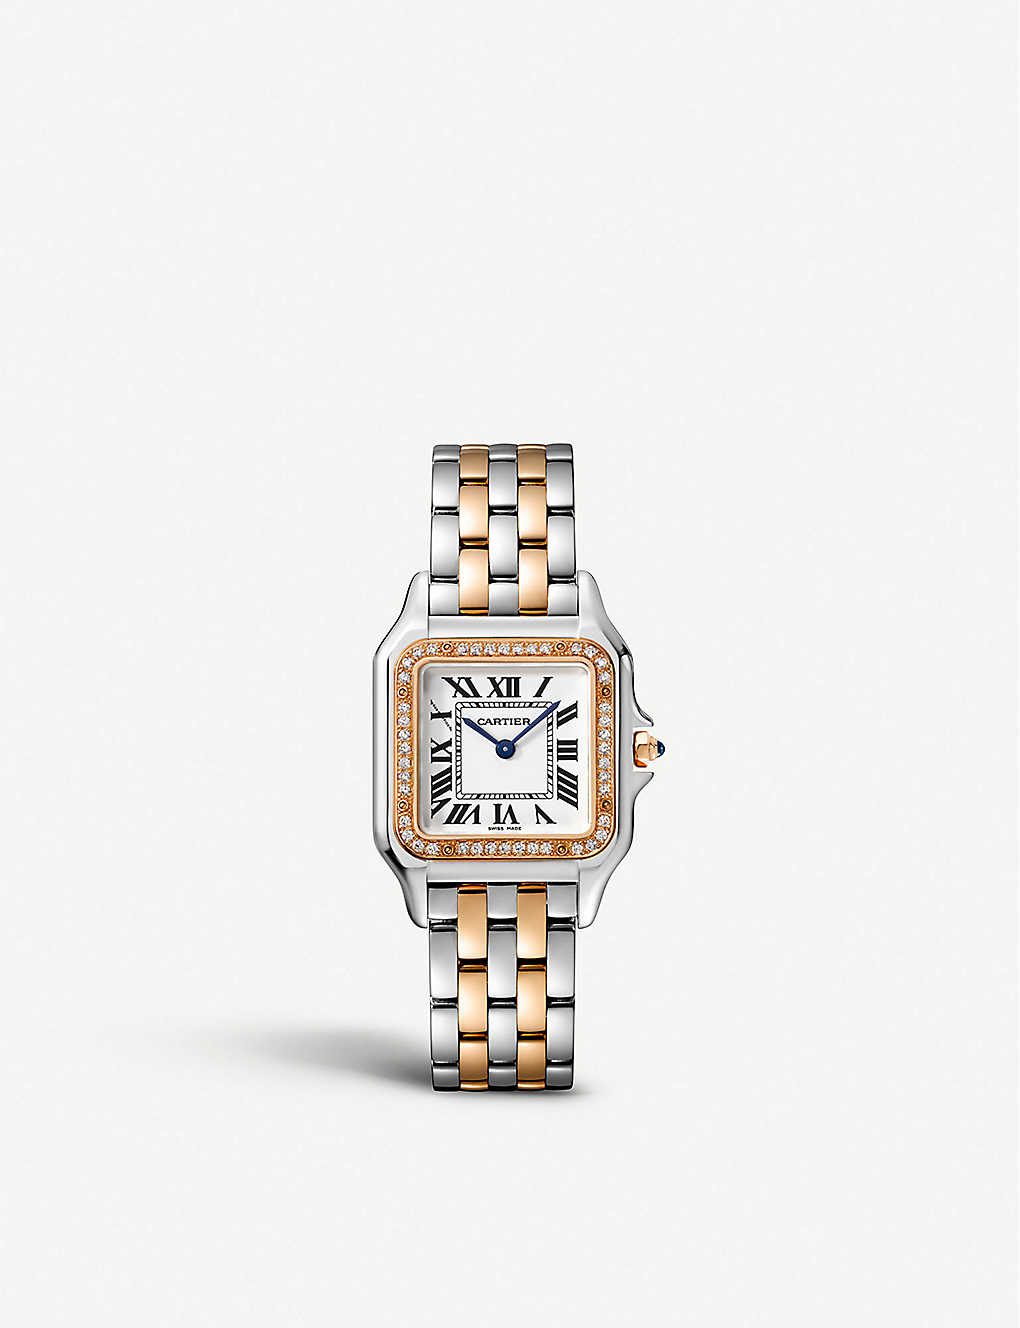 CARTIER: W3PN0007 Panth?re de Cartier 18ct rose-gold, stainless steel and diamond watch